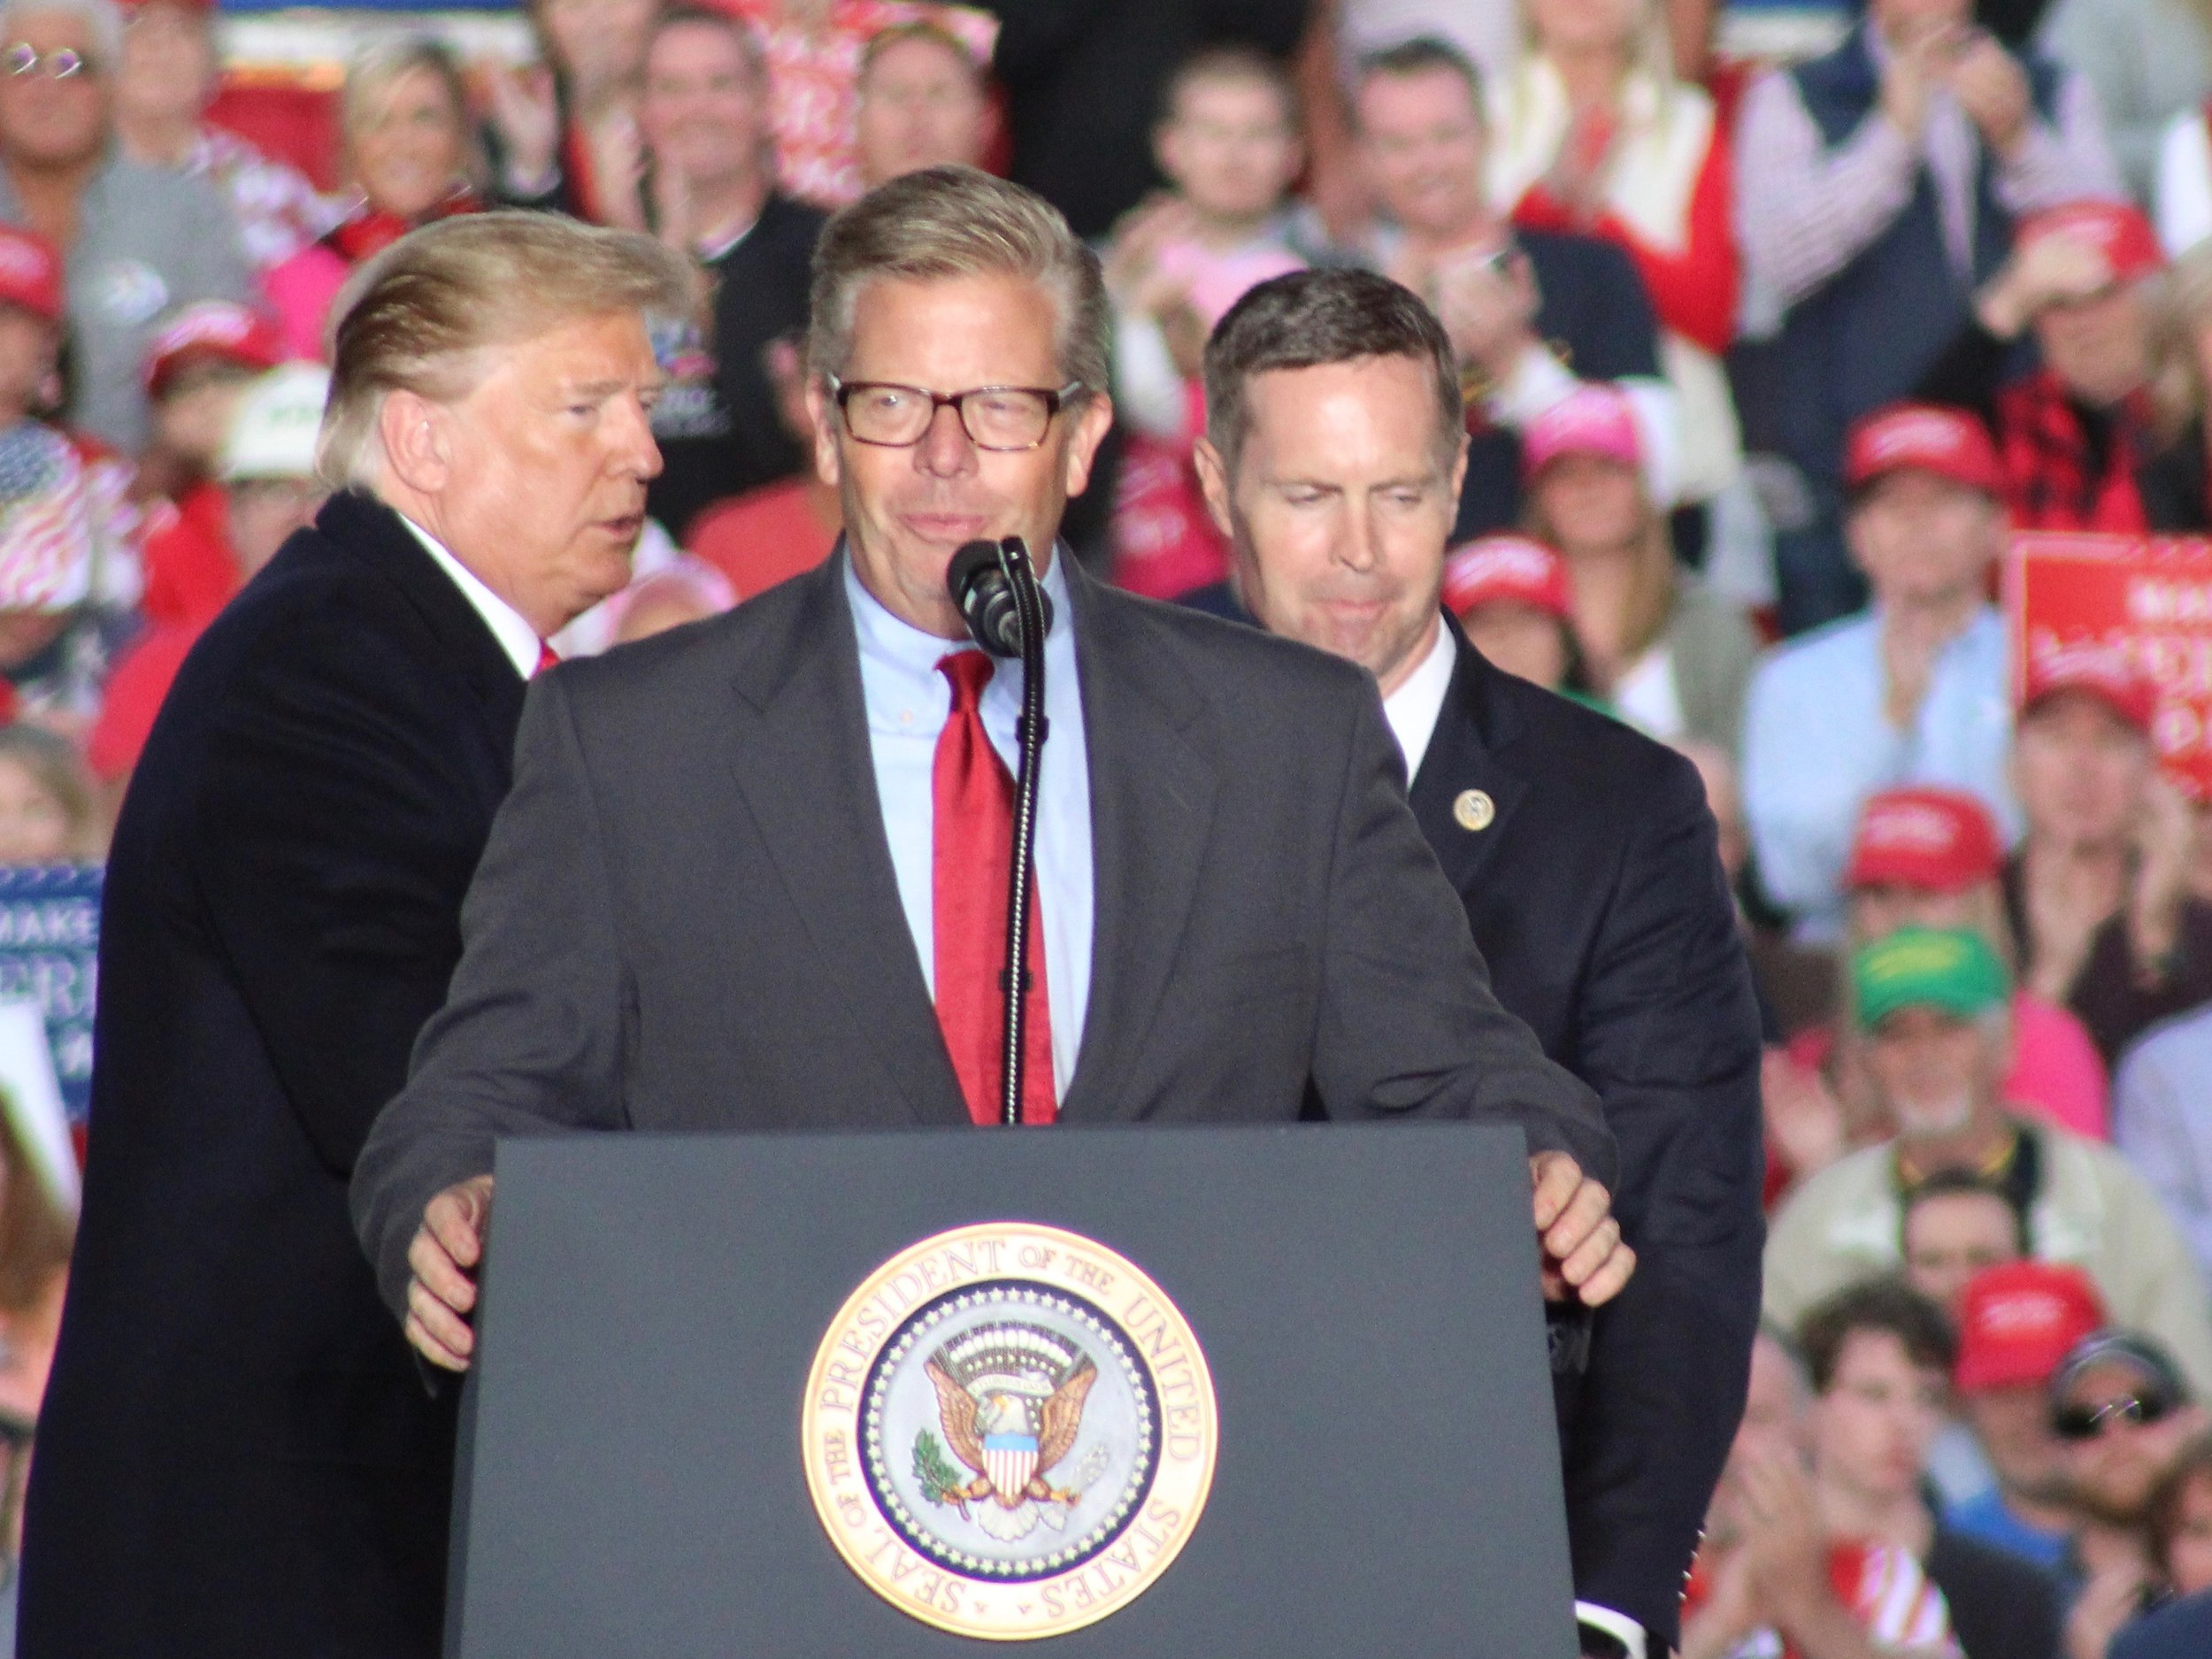 President Donald Trump with Congressmen Randy Hultgren and Rodney Davis at a campaign rally in Murphysboro the weekend before the midterms: Hultgren paid the price for unwavering support for the president, but Davis survived in a district Trump won more comfortably in 2016. (One Illinois/Ted Cox)